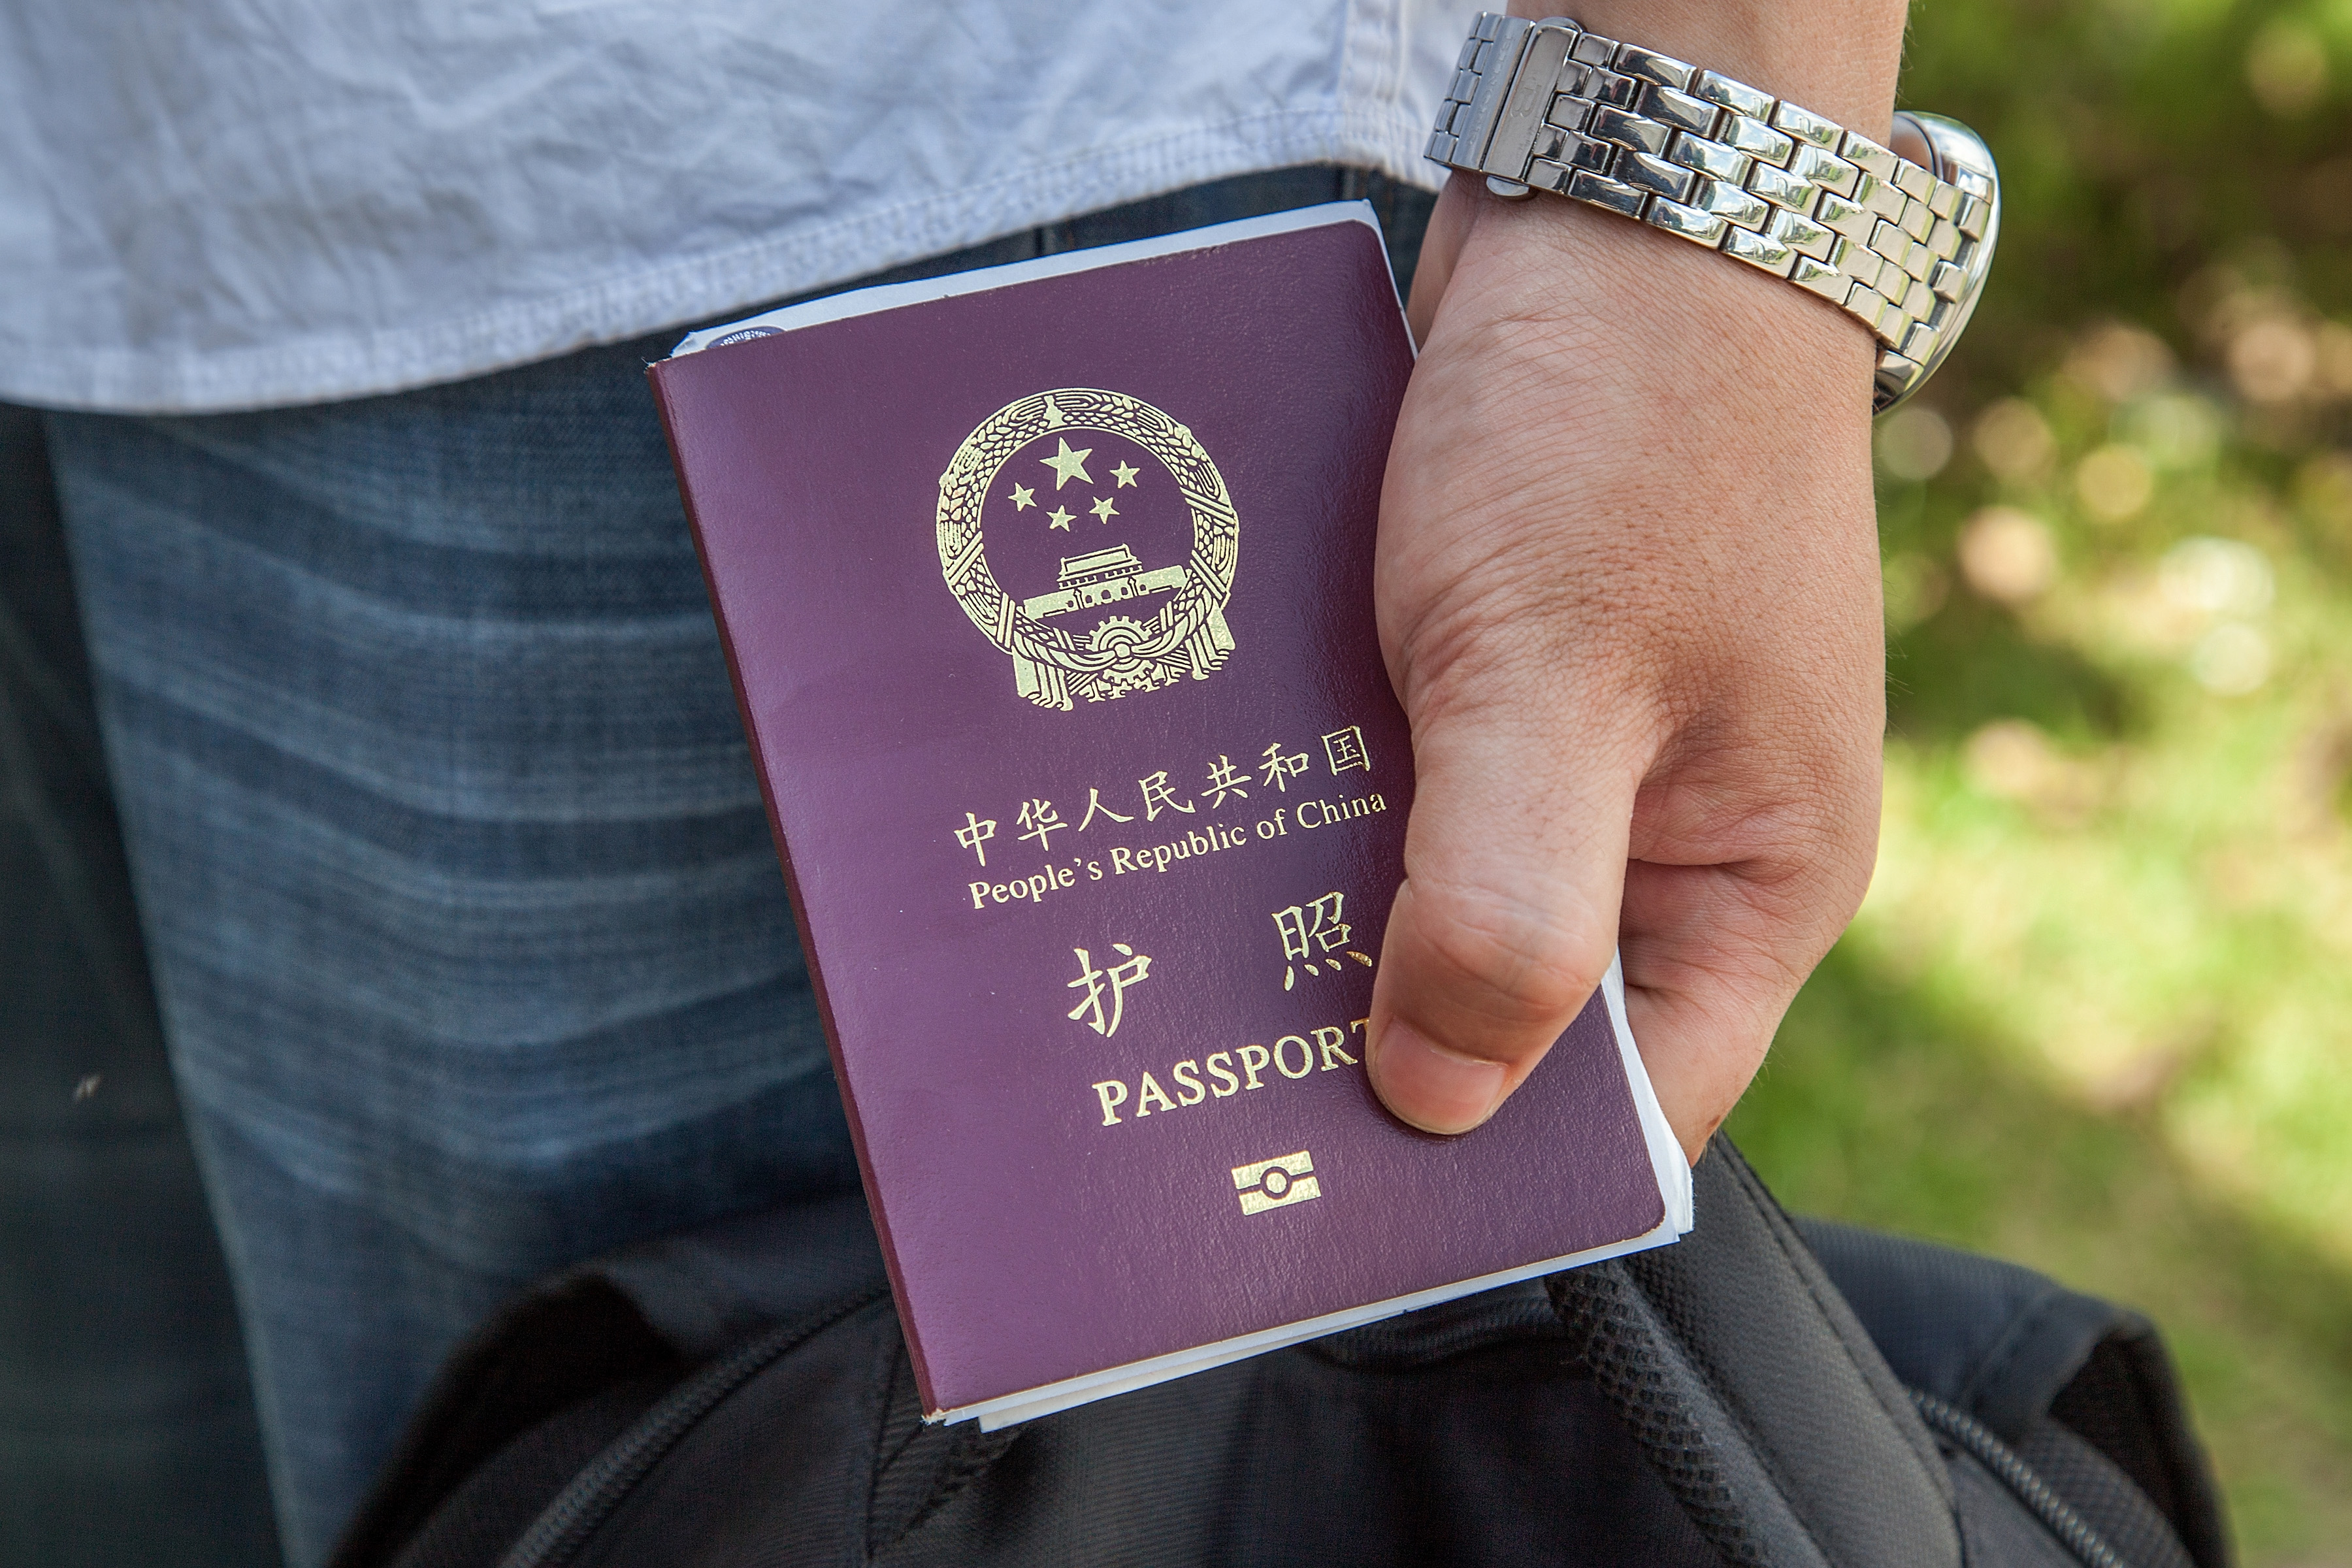 In China, Professors Don't Have Freedom to Travel Abroad